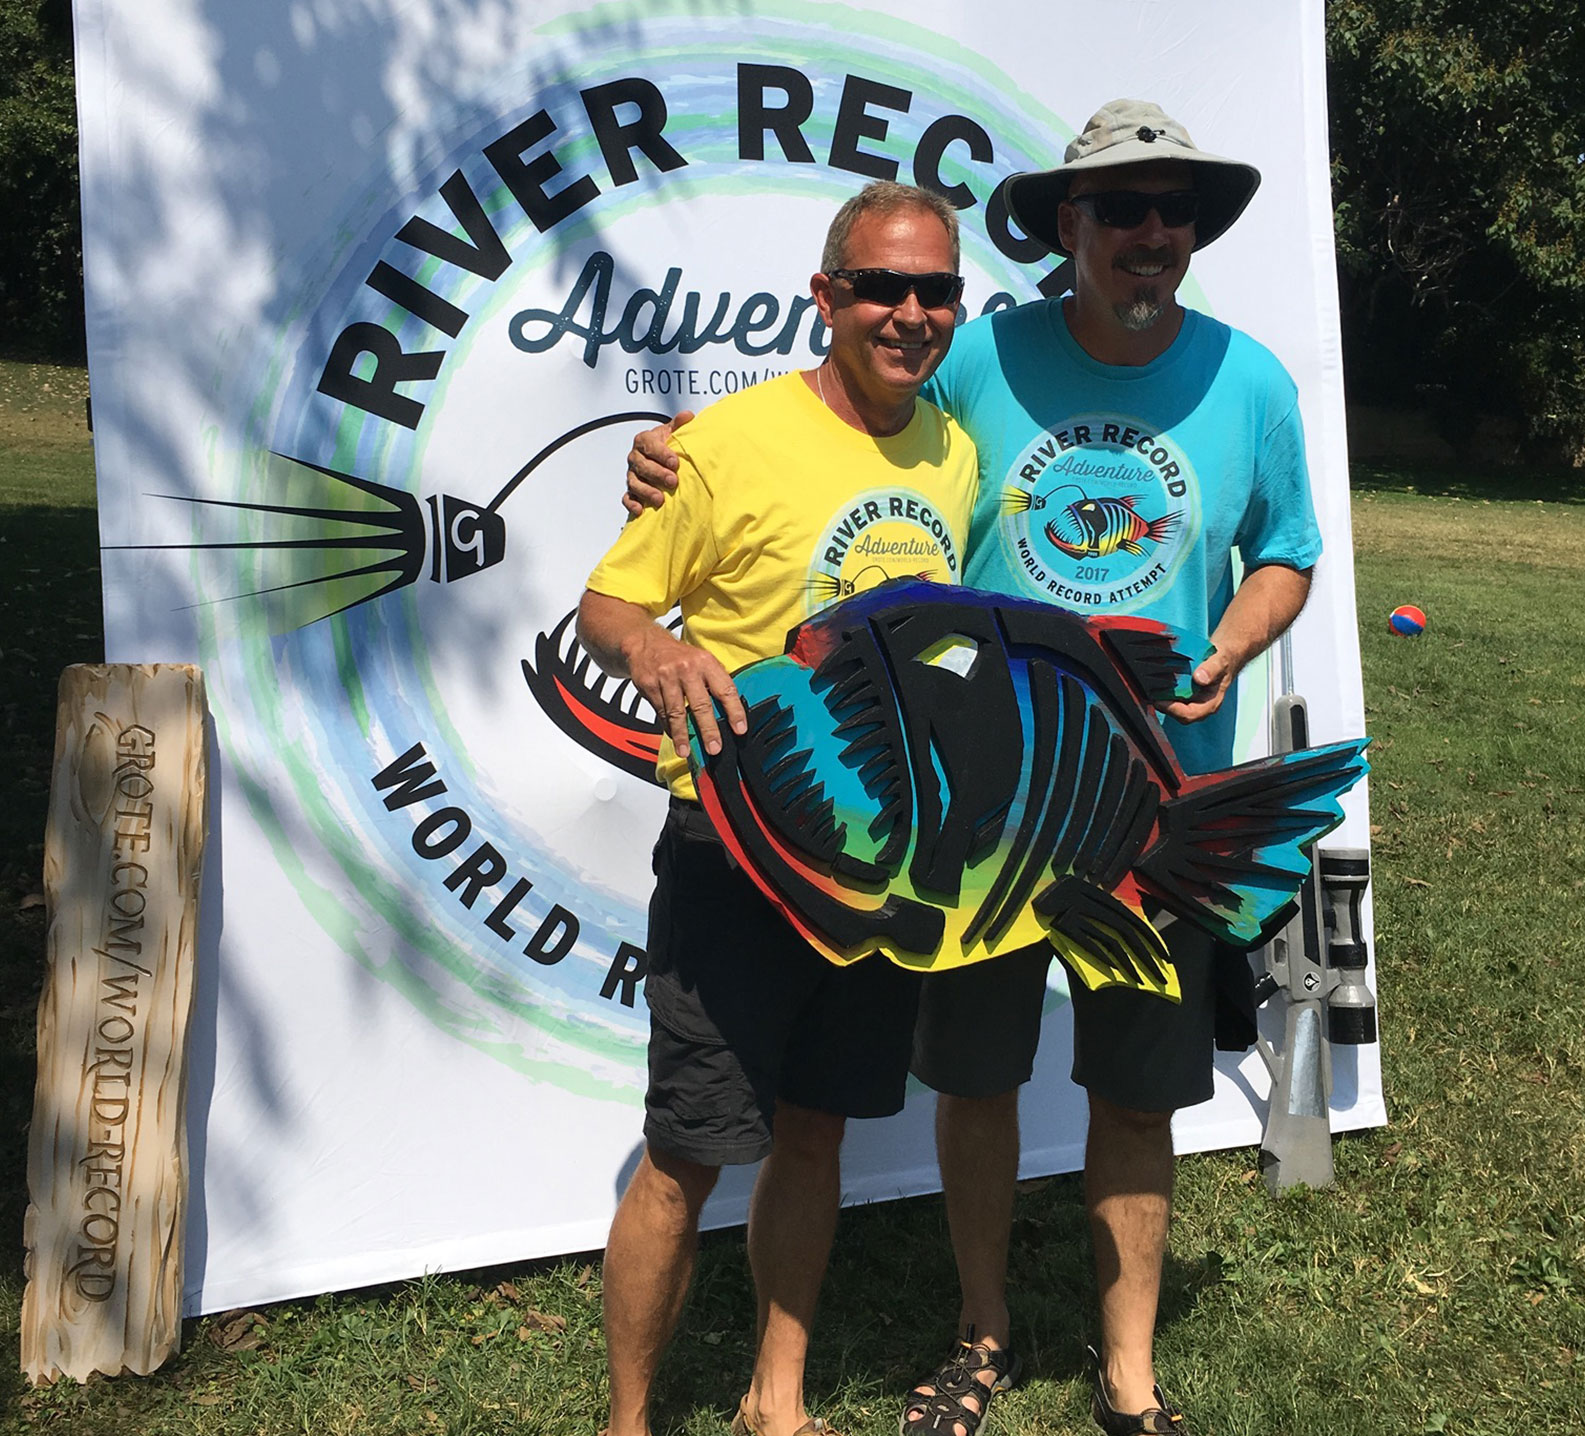 Marc Phelps poses for a photo with an old friend during the River Record Adventure Kickoff party in Madison